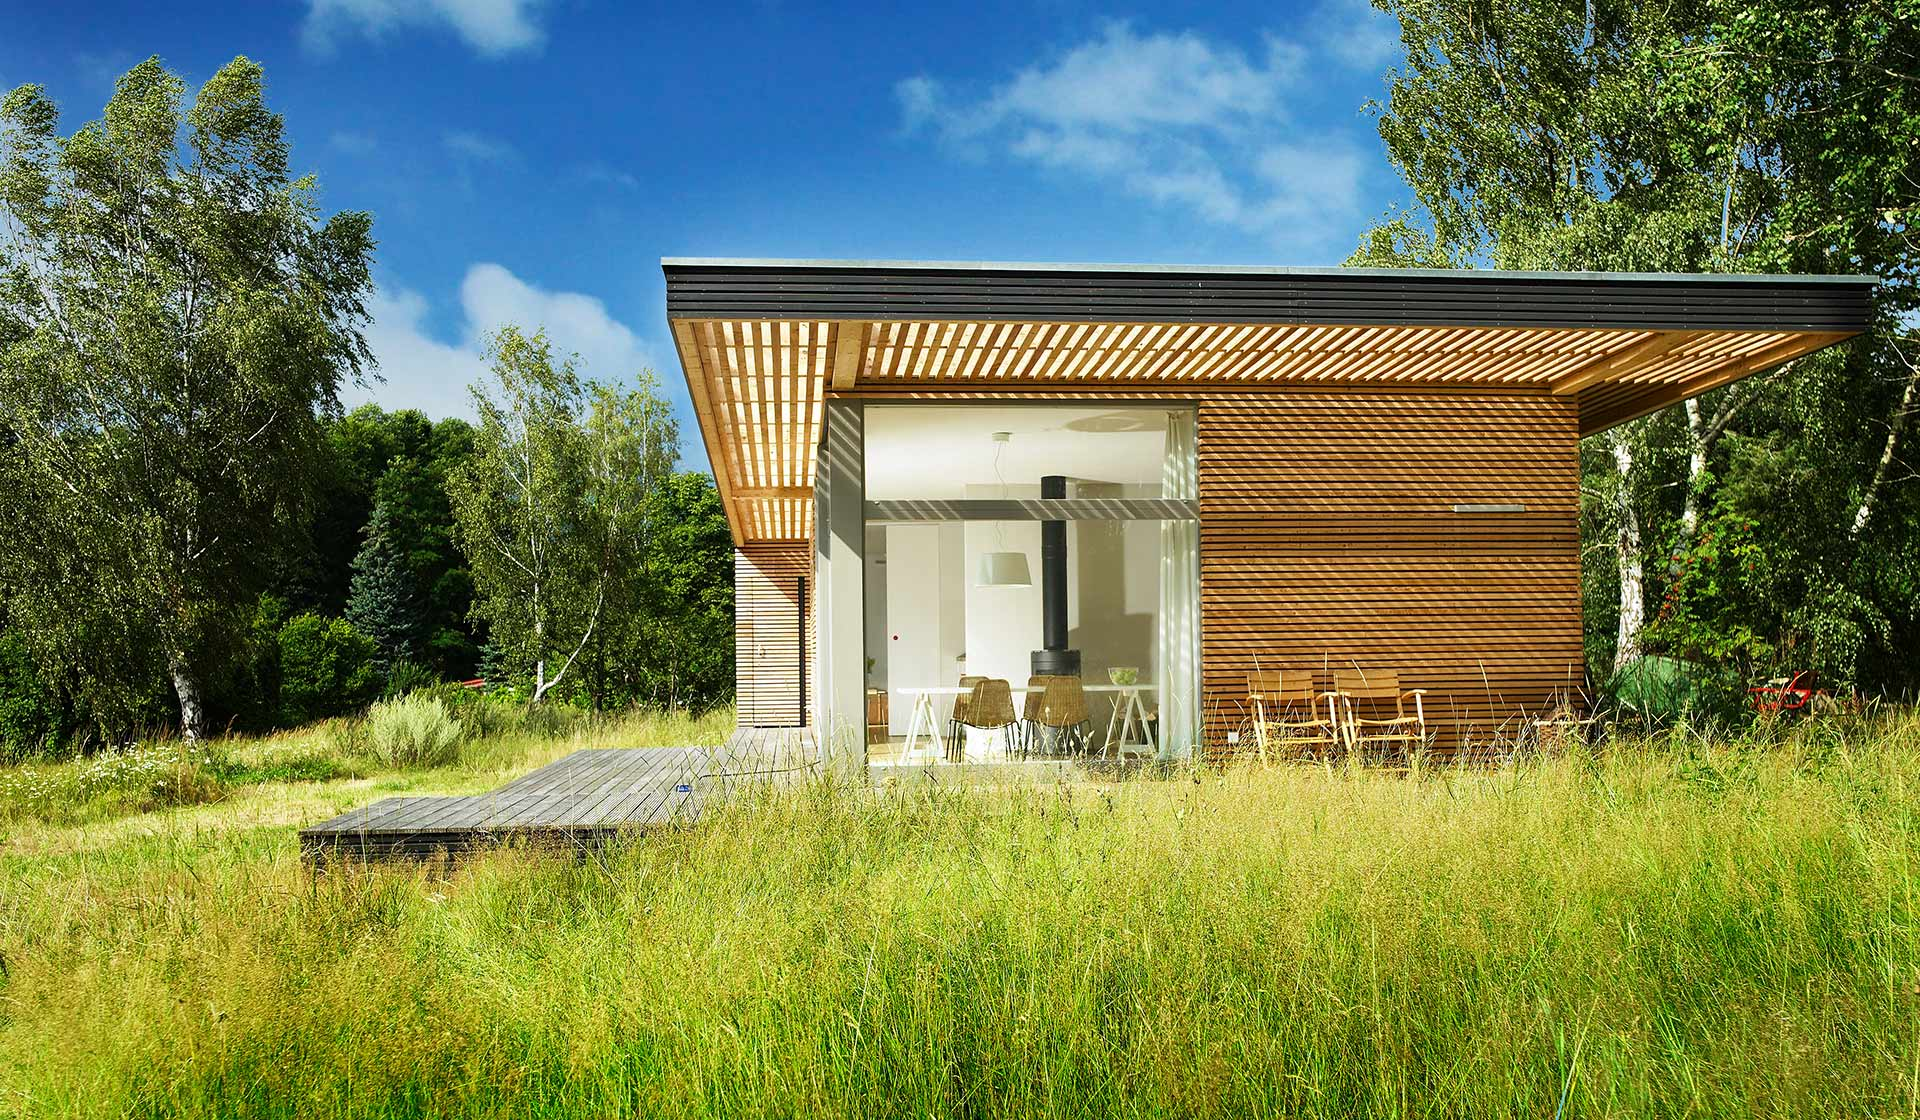 Inspired By Scandinavian Summerhouse Culture, Sommerhaus PIU Is A  Clean Lined Prefab Vacation Home